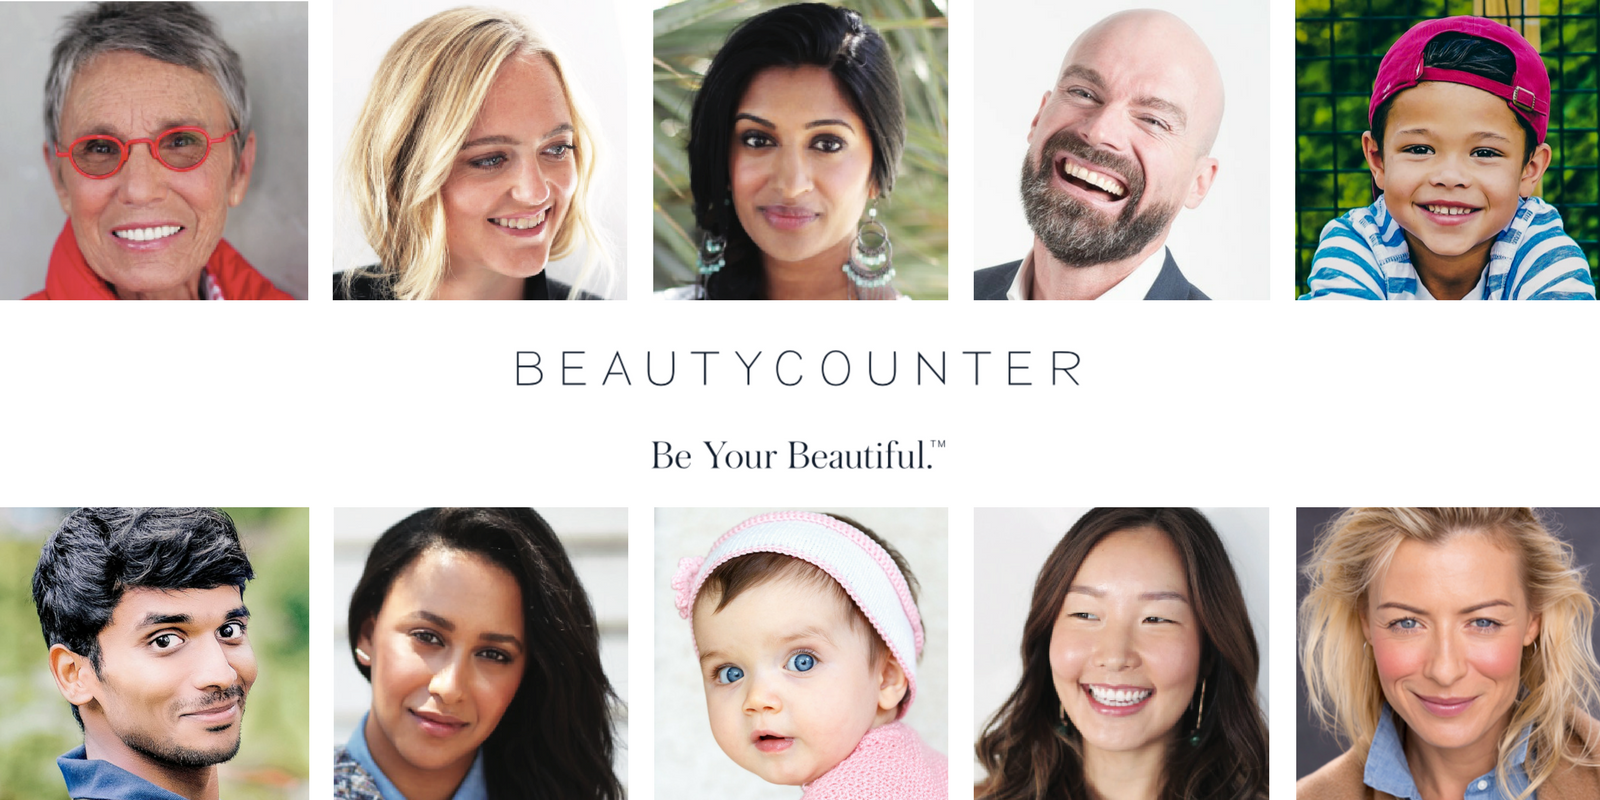 beautycounter-be-your-beautiful-men-women-children-baby